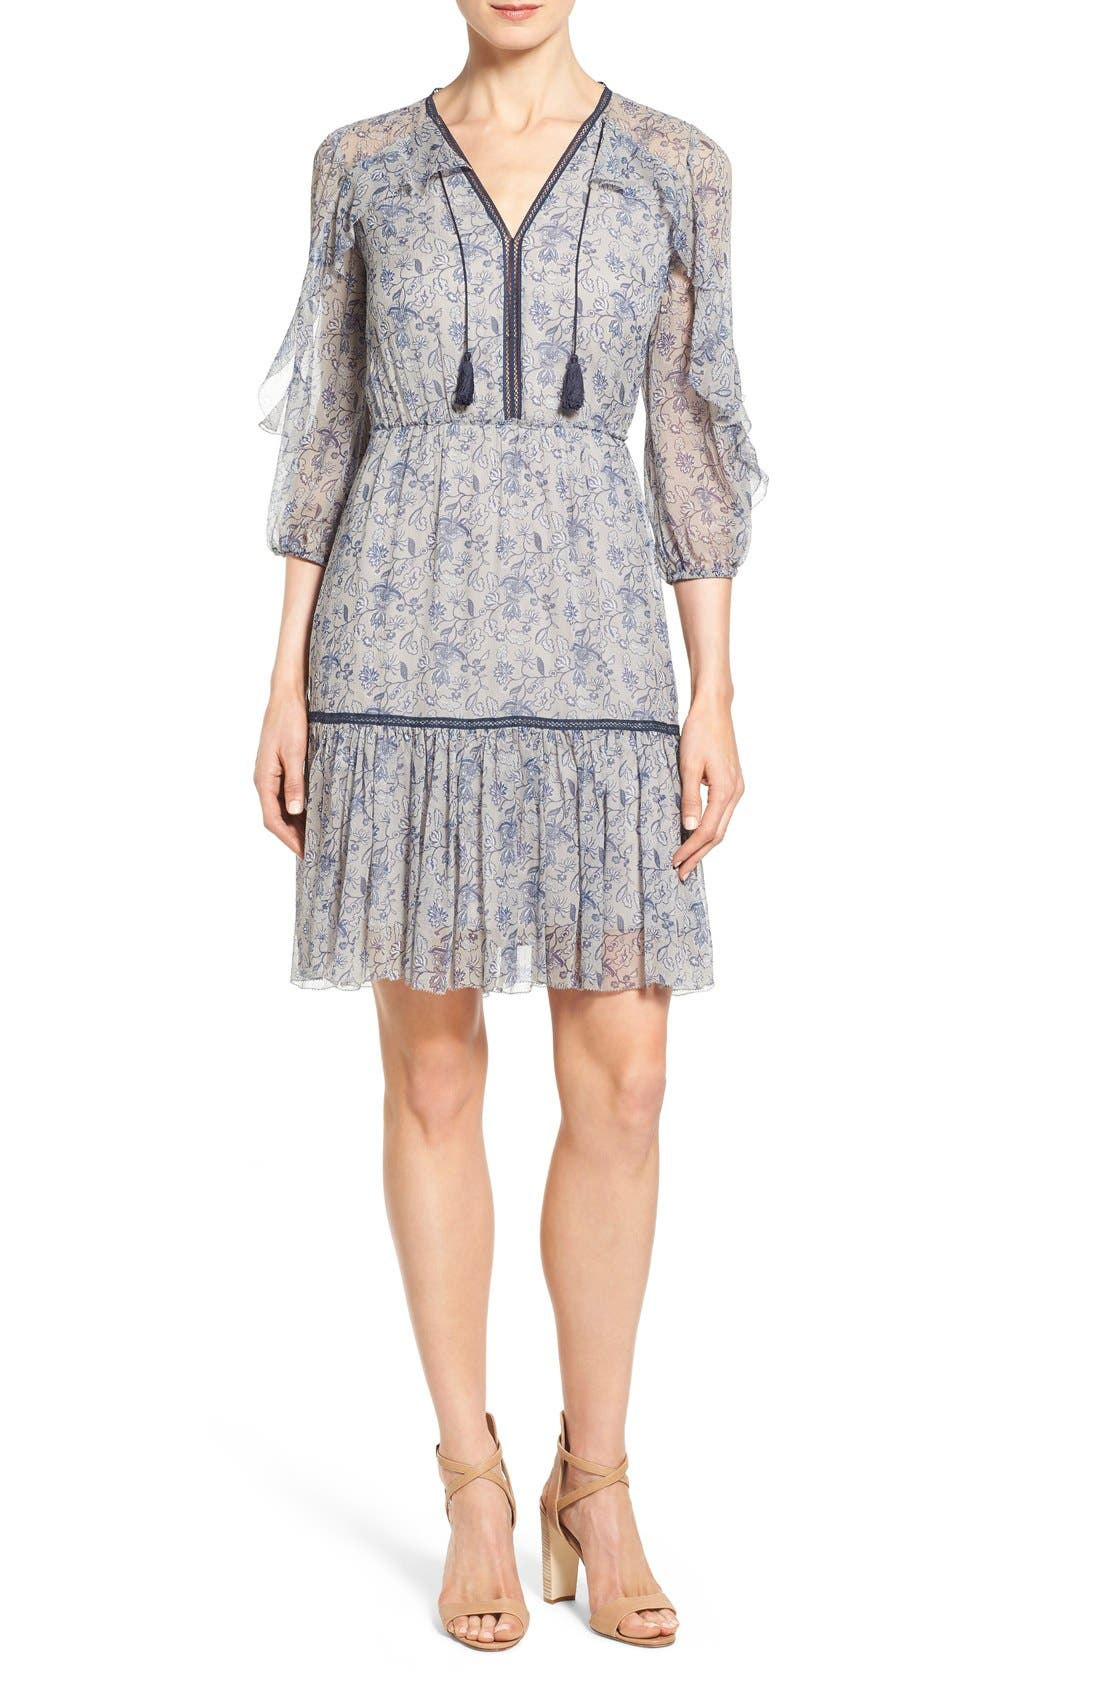 Alternate Image 1 Selected - Elie Tahari 'Landon' Ruffle Trim A-Line Floral Print Silk Dress